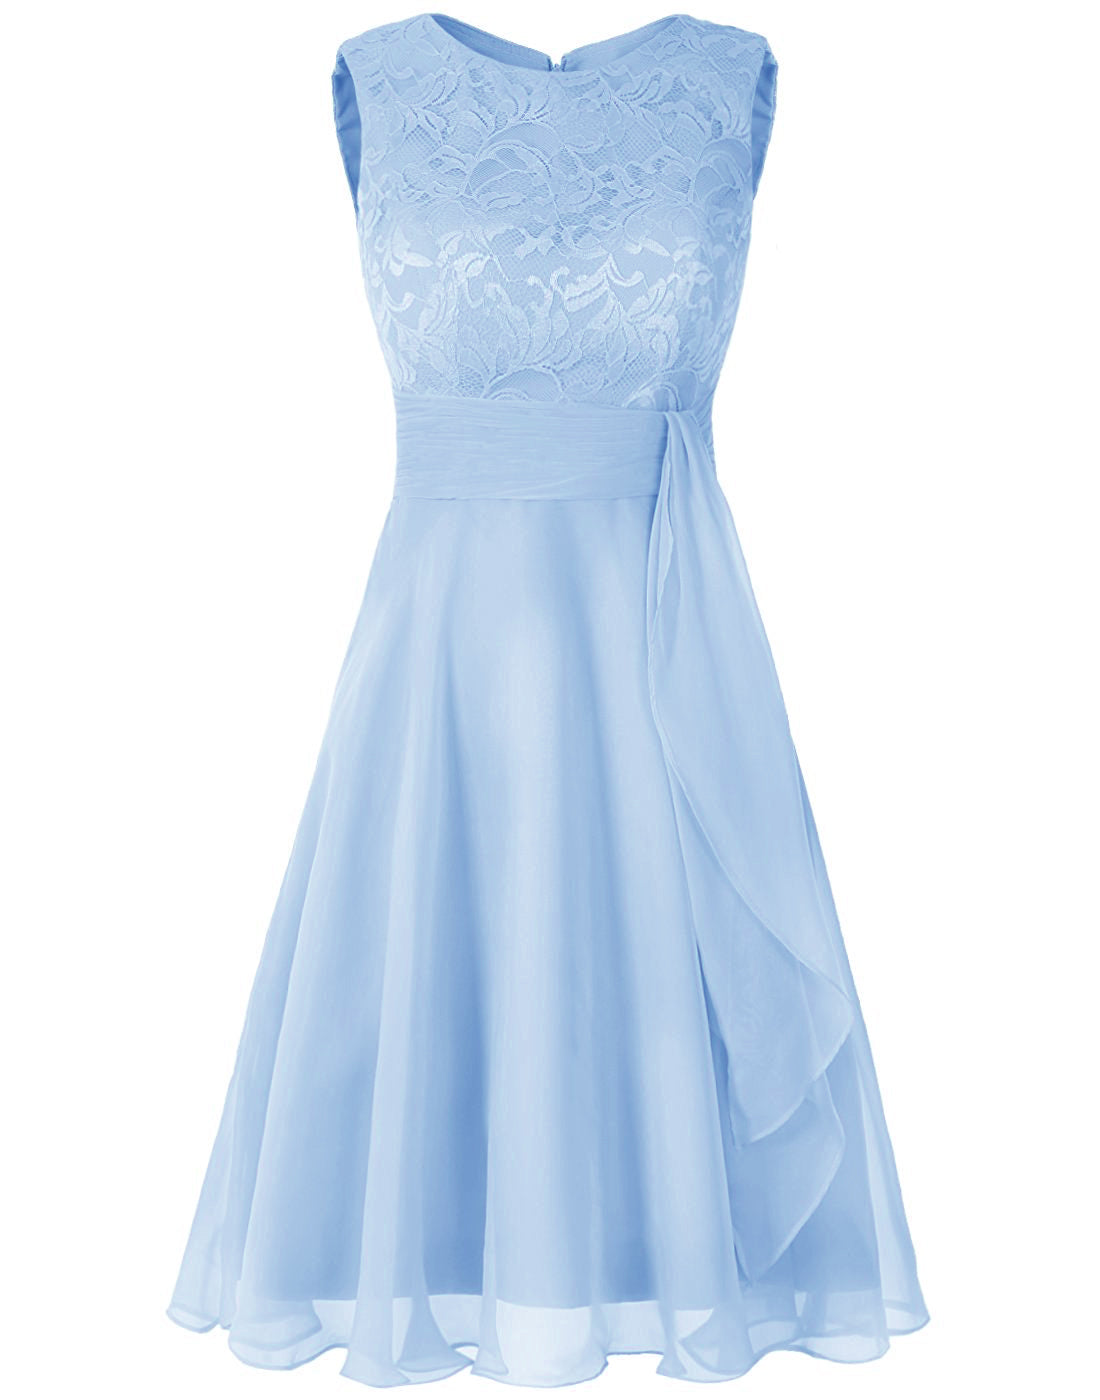 abdb12639a4 Pale Blue Prom Dress Short - Data Dynamic AG